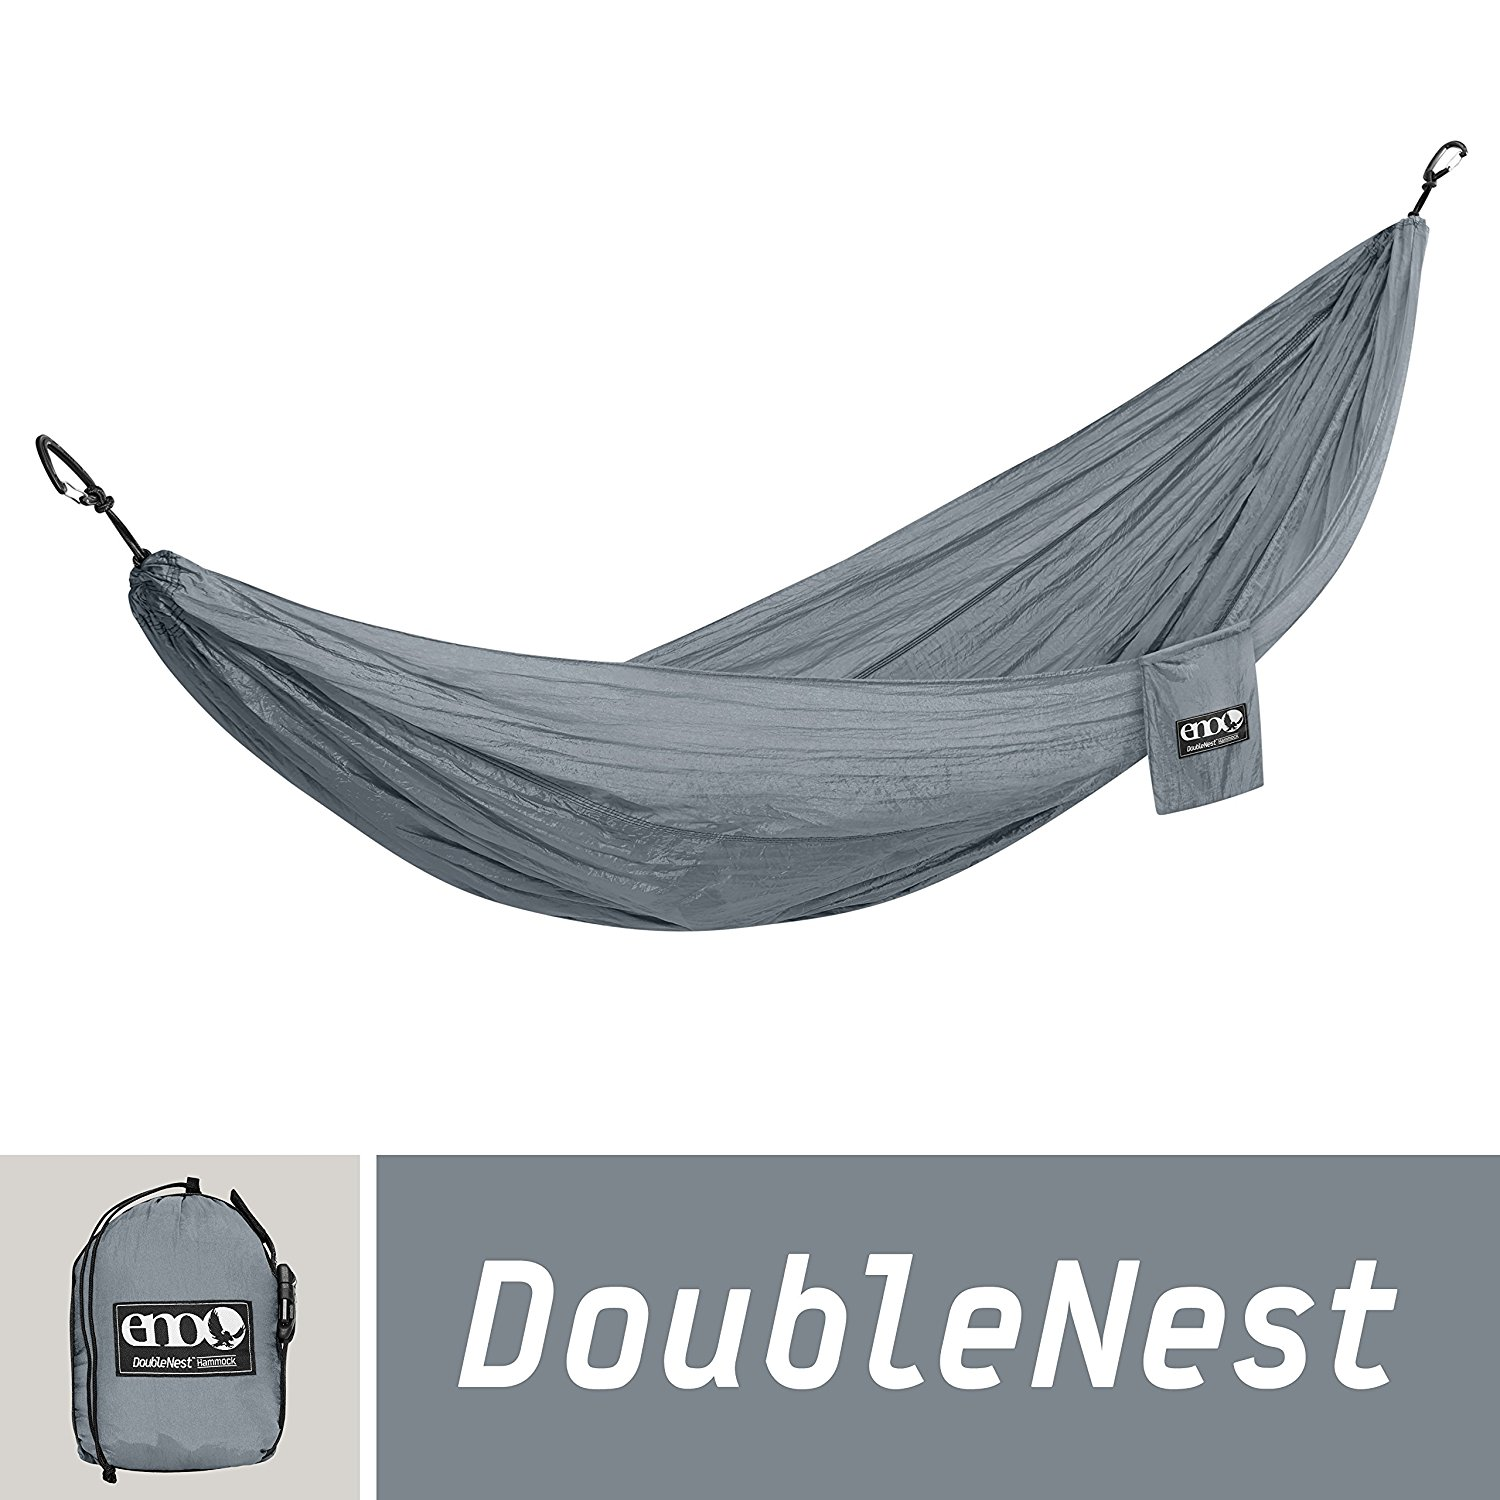 ENO Eagles Nest Outfitters - DoubleNest Hammock, Portable Hammock for Two, Grey